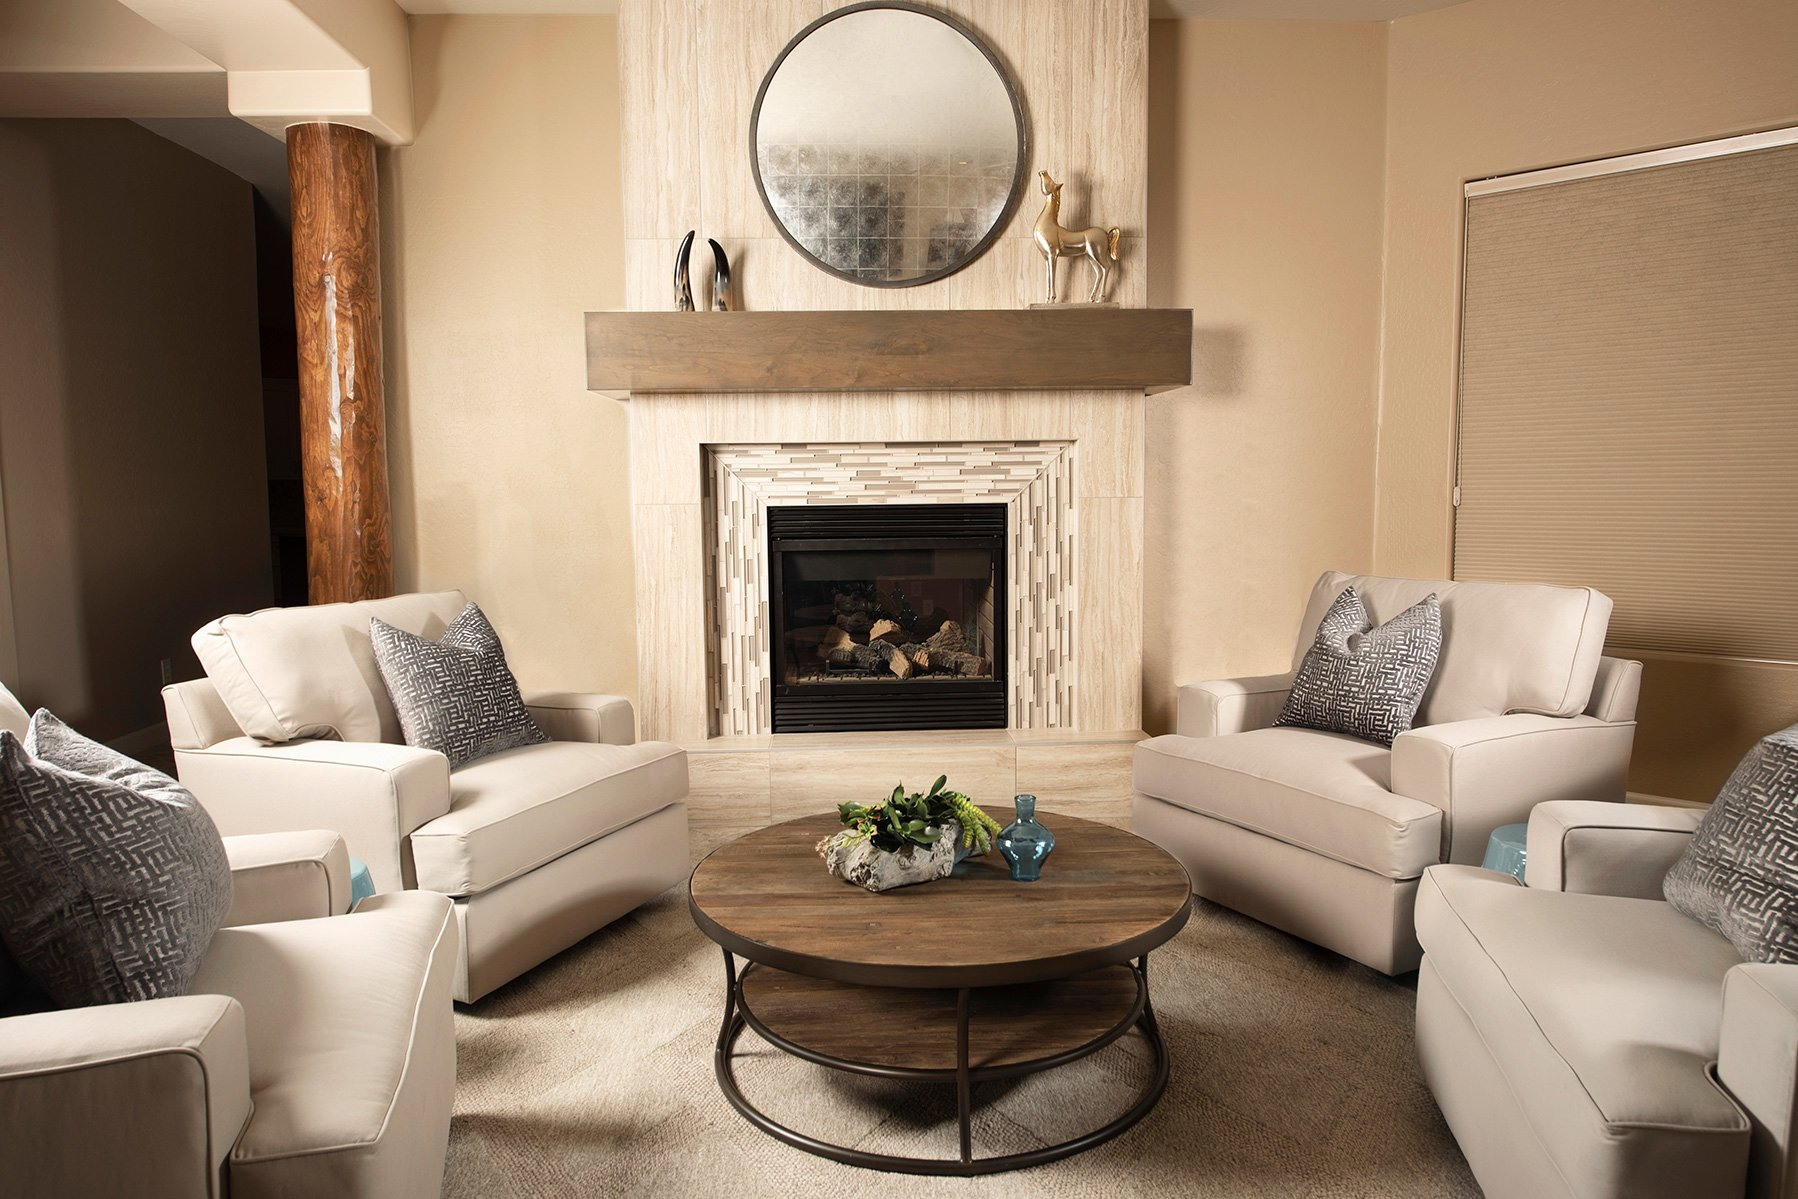 Living Room Remodel Scottsdale Arizona Interior Design